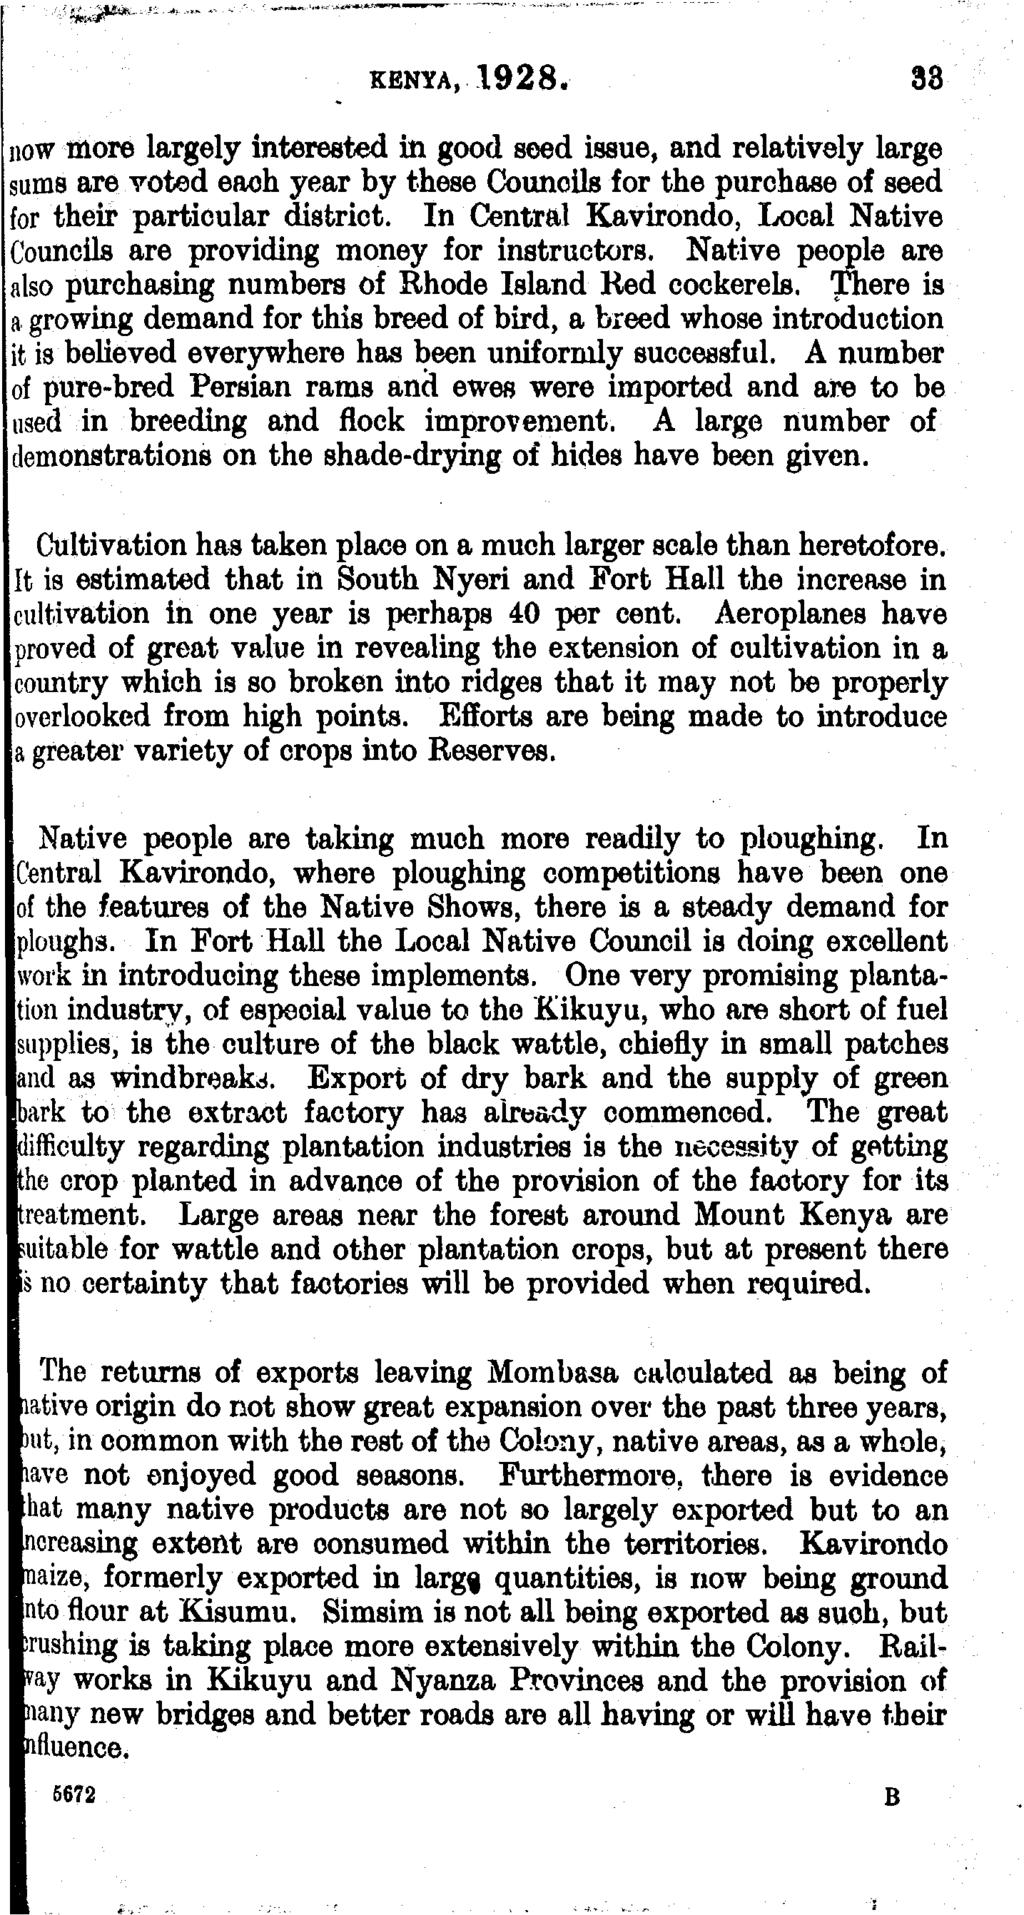 KENYA, 1928. 38 now more largely interested in good seed issue, and relatively large sums are voted each year by these Councils for the purchase of seed for their particular district.